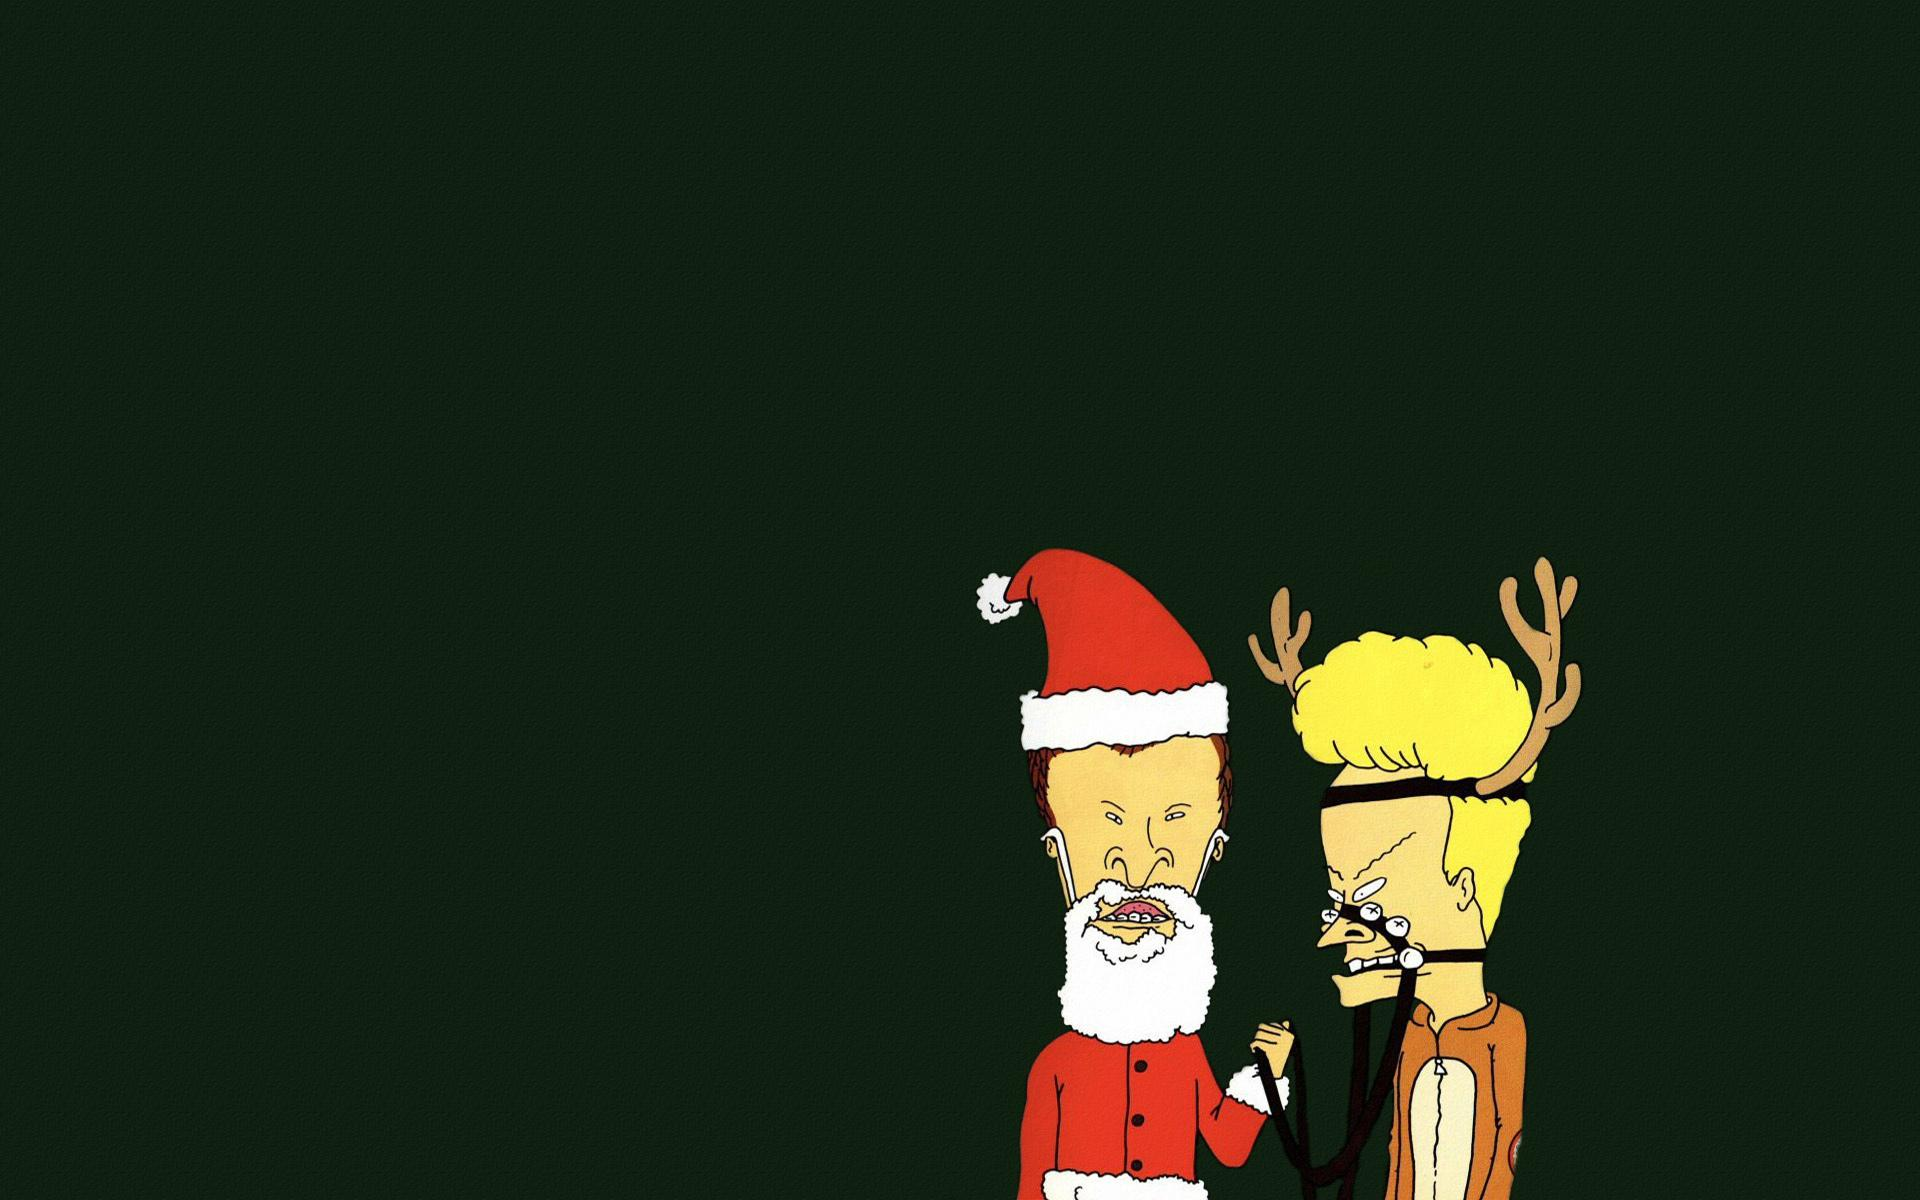 beavis and butthead wallpaper hd download